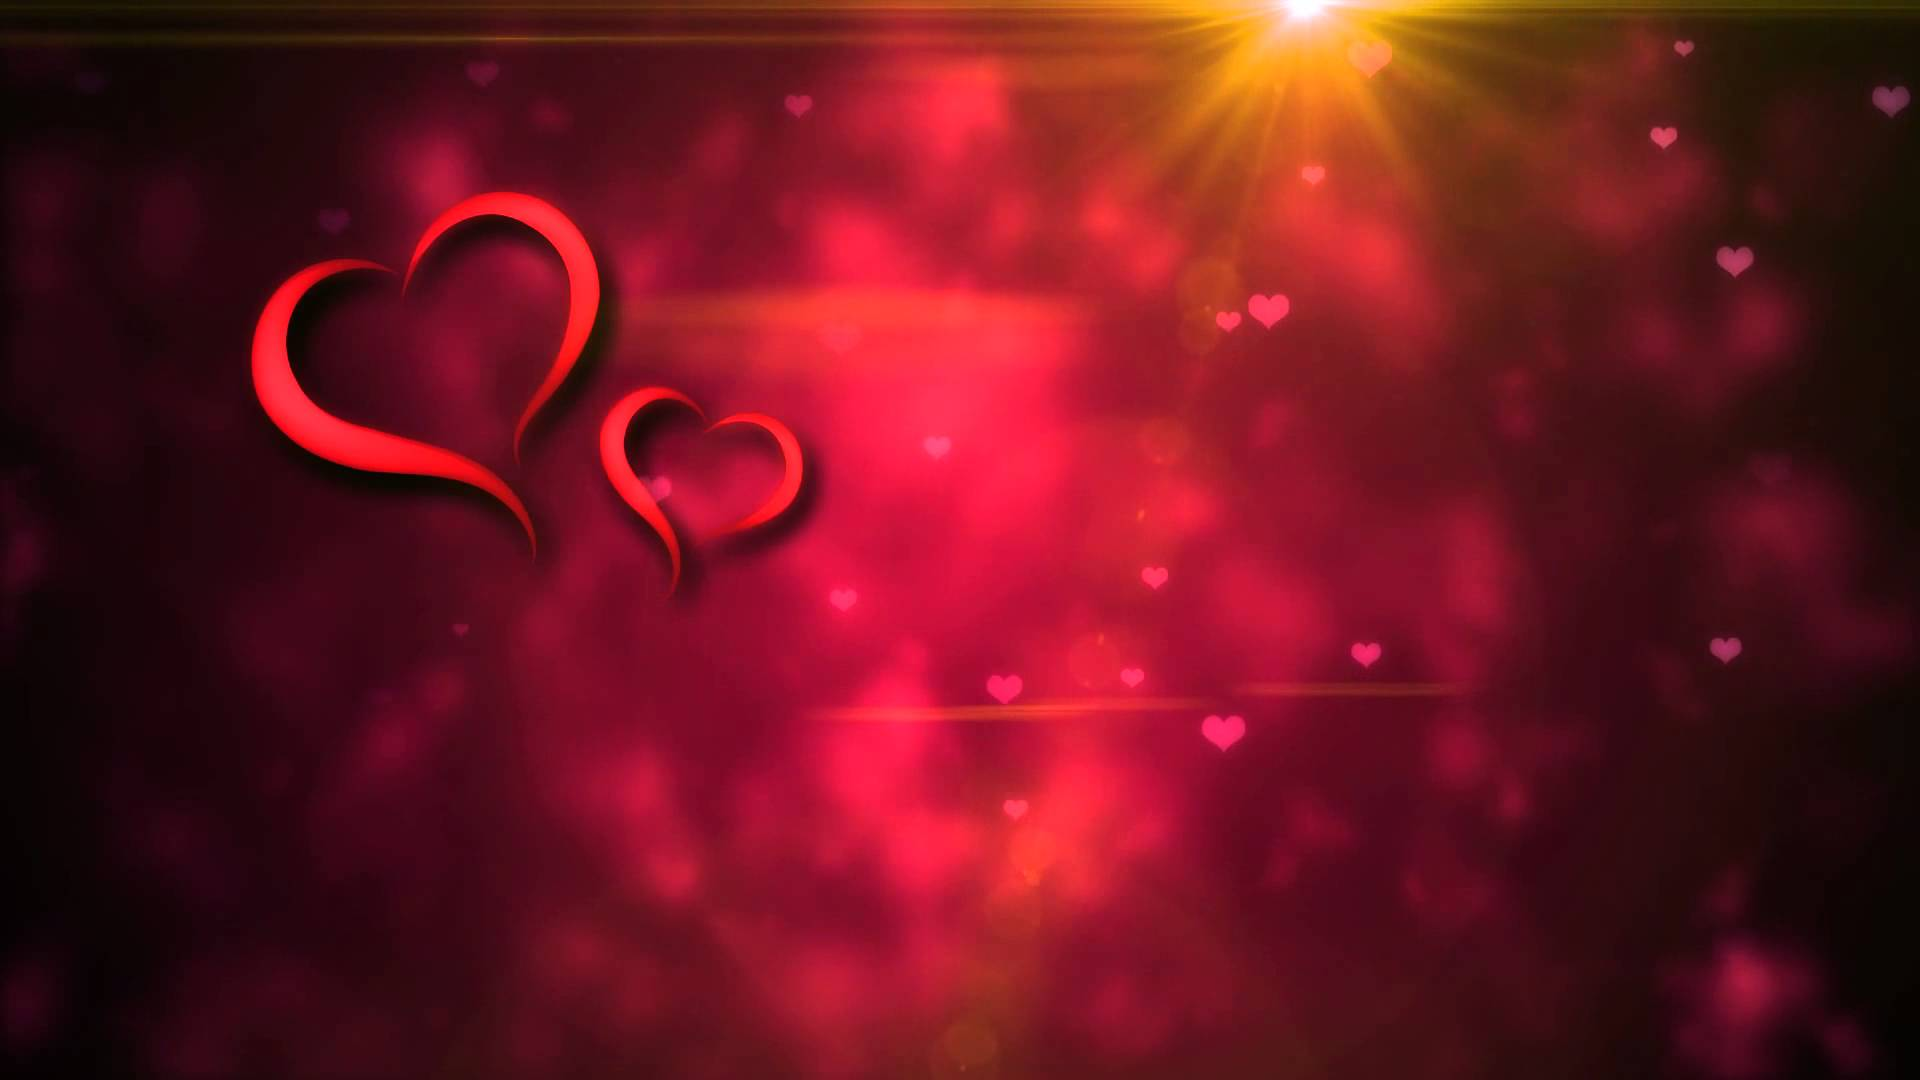 Love couple Hd Wallpaper For Smartphone : Hd Wedding Backgrounds - WallpaperSafari